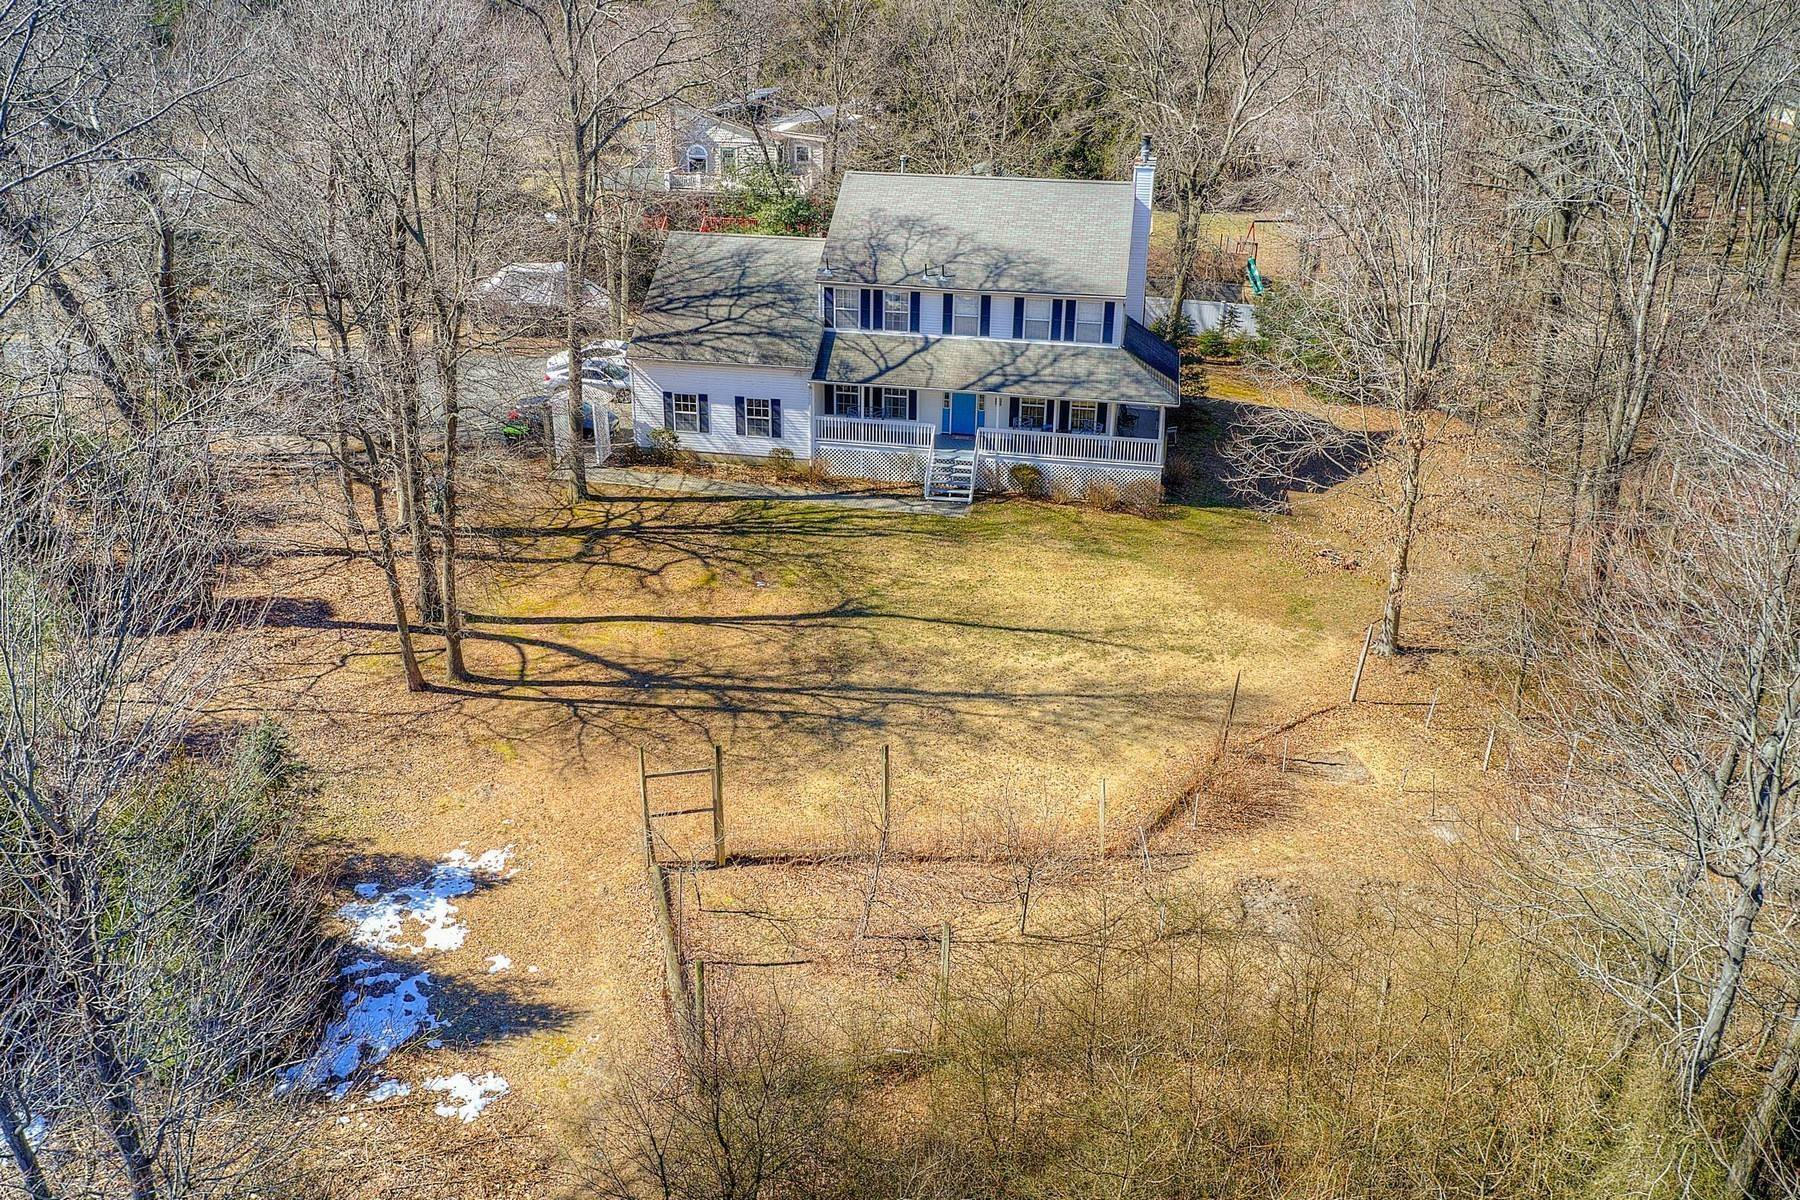 Land for Sale at 292 A Middle Road, Holmdel, NJ 292 Middle Road, A Holmdel, New Jersey 07733 United States